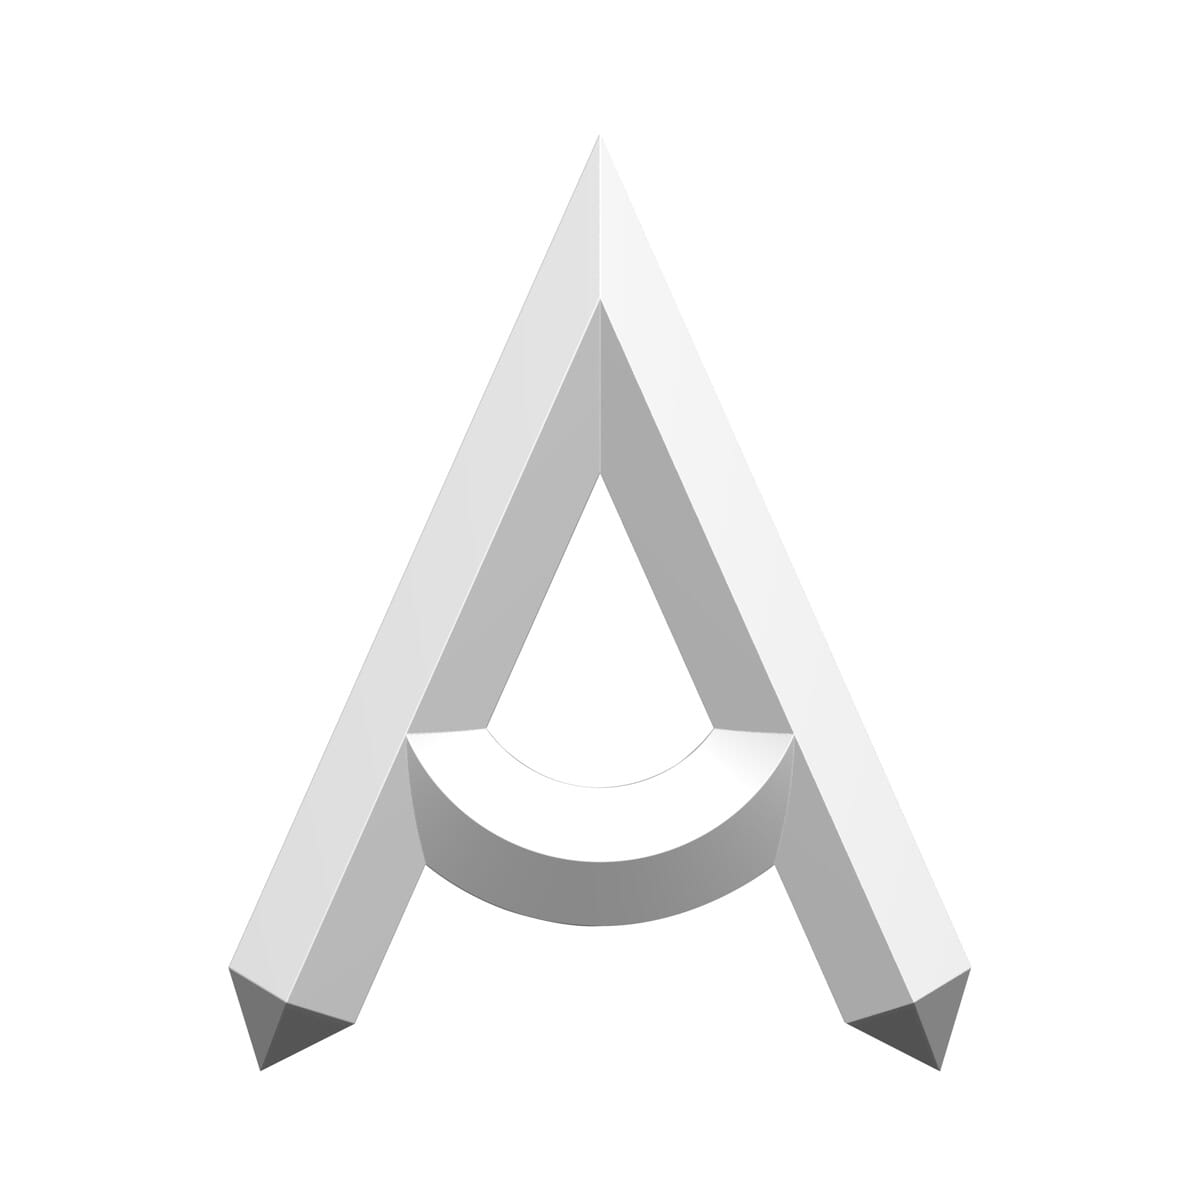 M5 x 30mm Carriage Bolts (DIN 603) - Phosphor Bronze Drawing